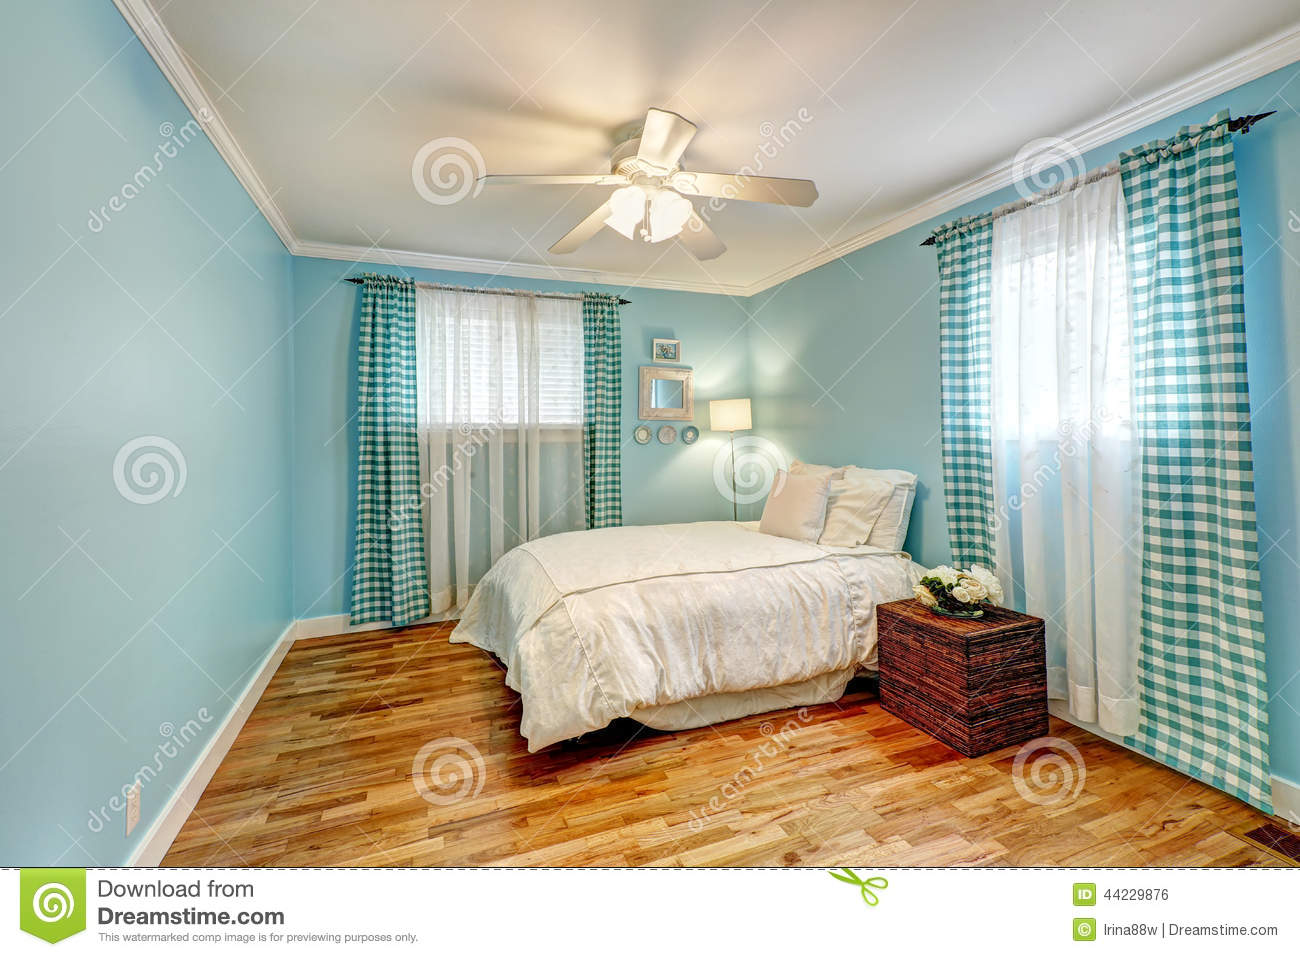 cheerful light blue bedroom with turquoise curtains and white bedding